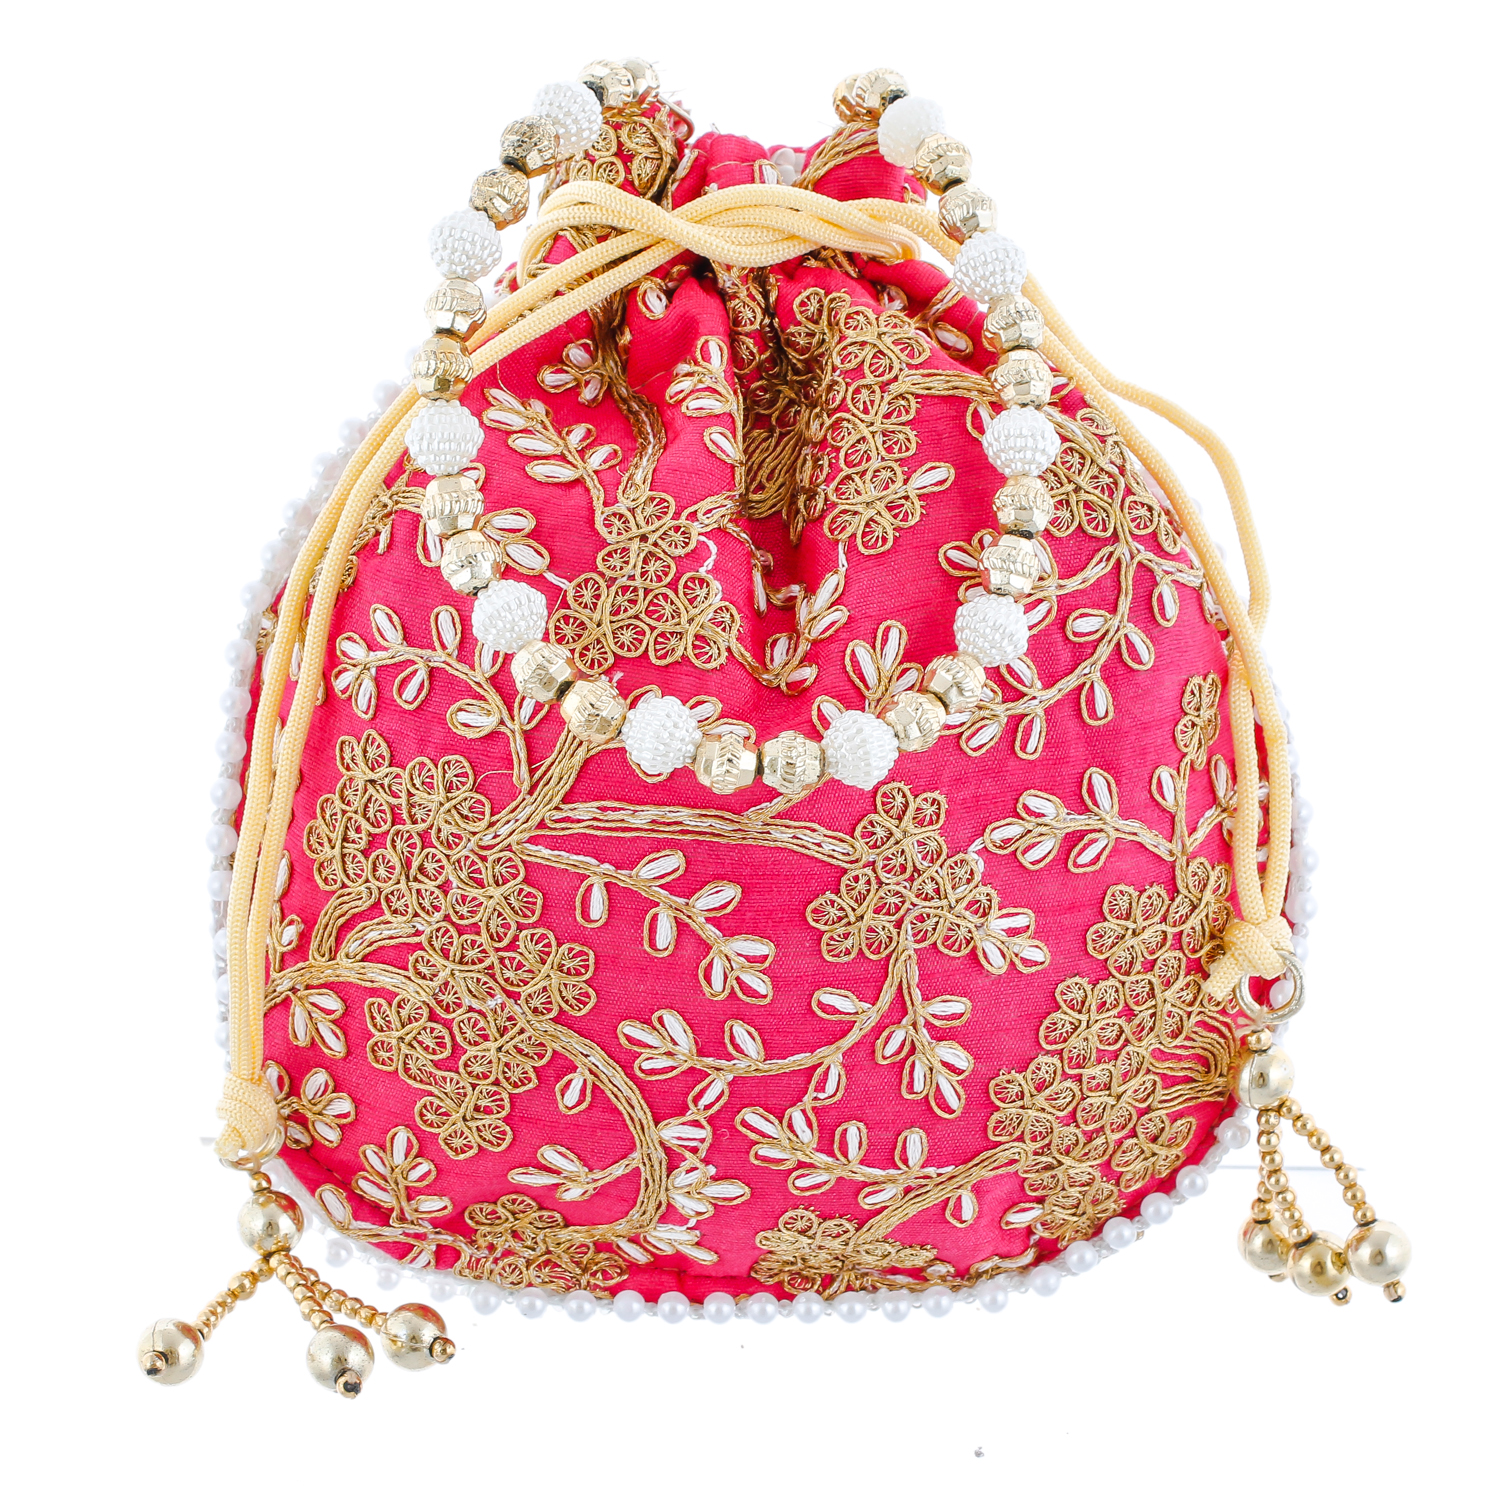 Kuber Industries Ethnic Clutch Silk 2 Pieces Potli Batwa Pouch Bag with Beadwork Gift For Women (Maroon & Pink) - CTKTC23044